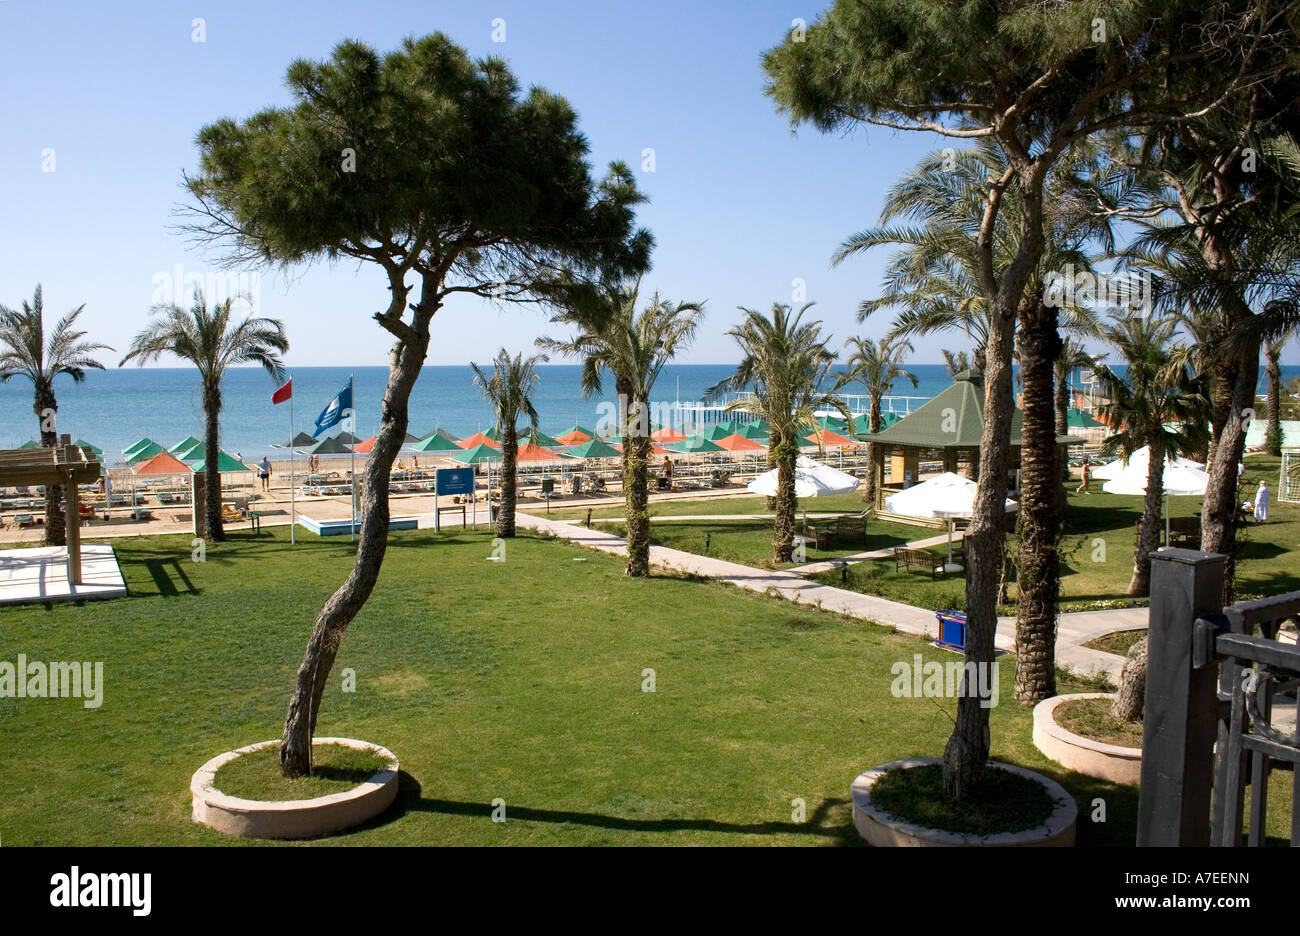 Belek Turkey Stock Photos & Belek Turkey Stock Images - Alamy